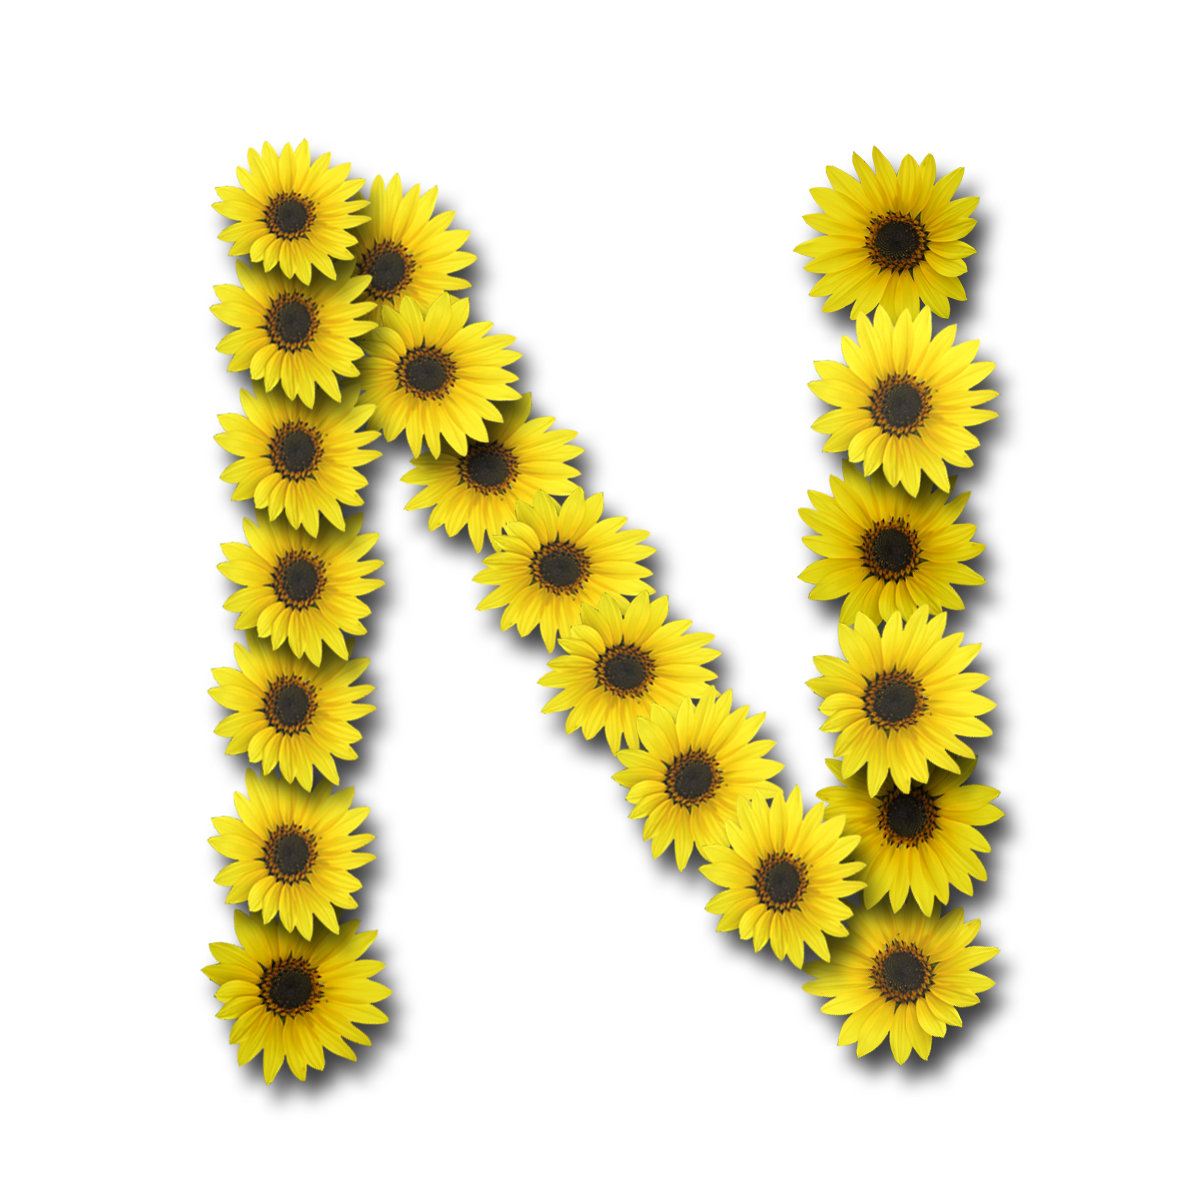 Capital-Letter-N1-Sunflower Varsity Letter N Template on final four template, professional letter template, pro letter template, alumni letter template, letter f template, college letter template, mission letter template, letter v template, white letter template, sophomore letter template, middle school letter template, open letter template, impact letter template, football letter template, varsity letters alphabet, national letter of intent template, black letter template, team letter template, blue letter template, block letters template,